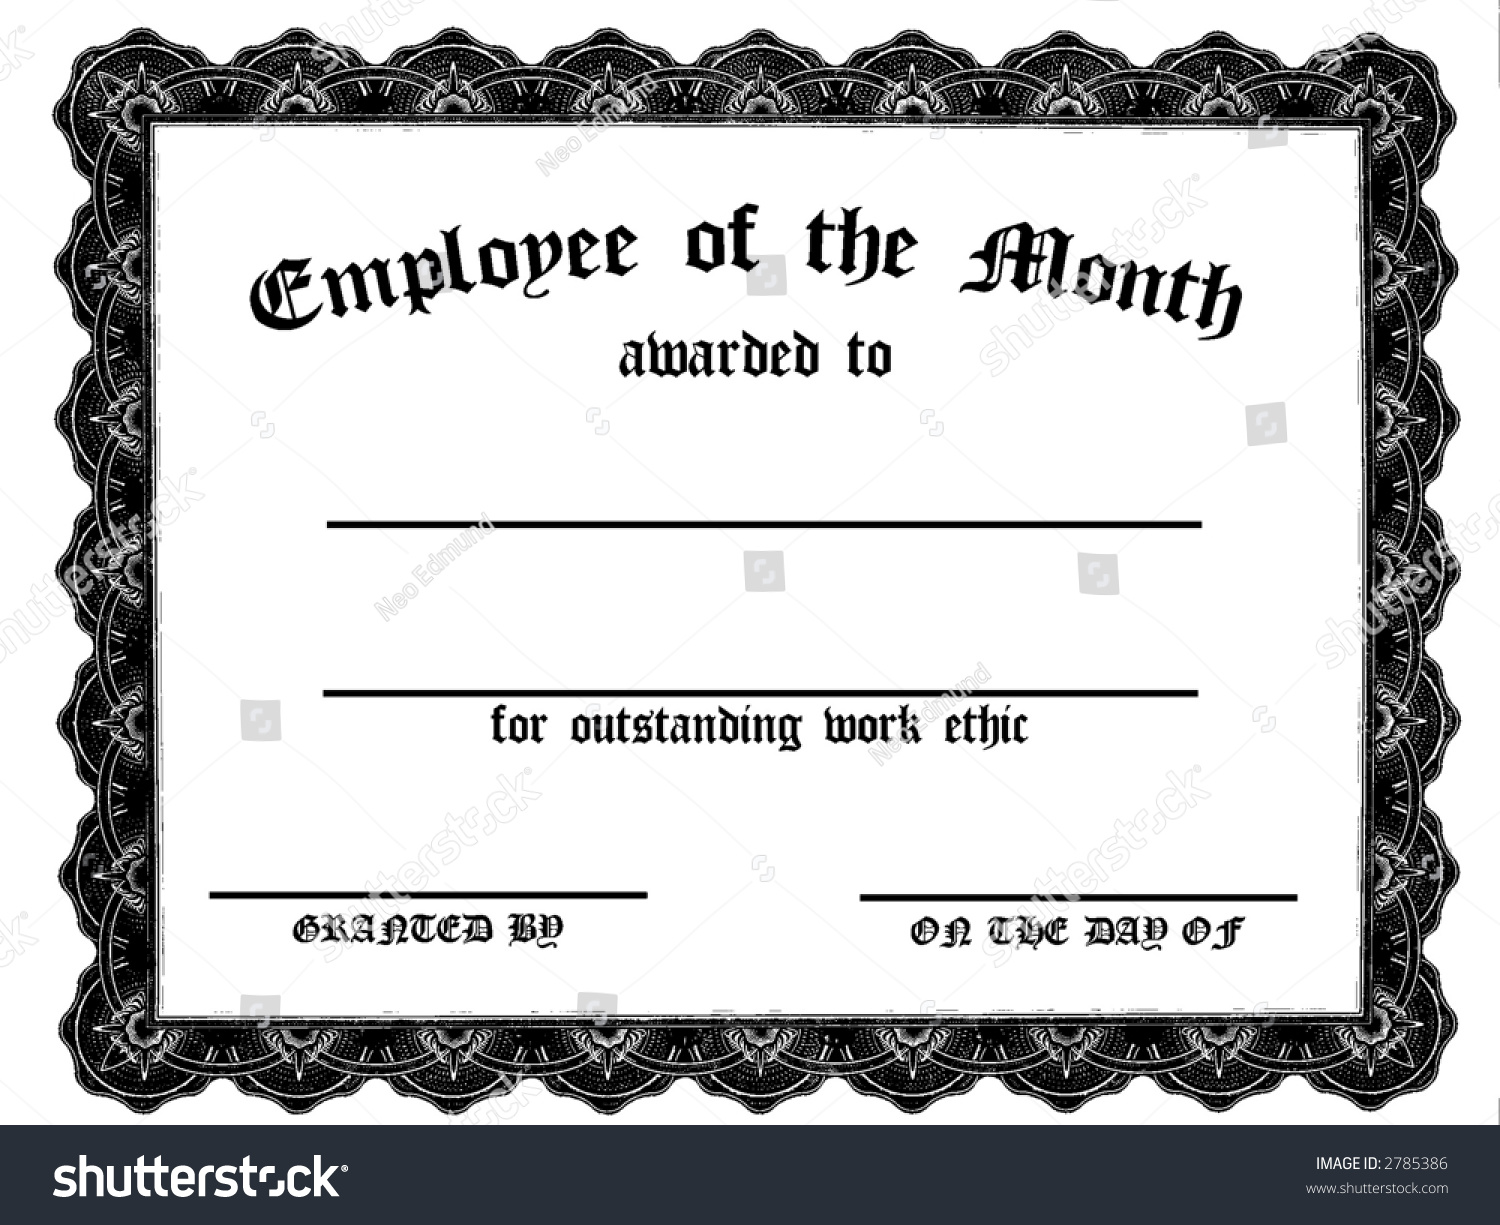 Captivating Achievement Award Wording Stock Photo Customizable Employee On The Month  Certificate 2785386 Outstanding Achievement Award Wordinghtml  Achievement Award Wording